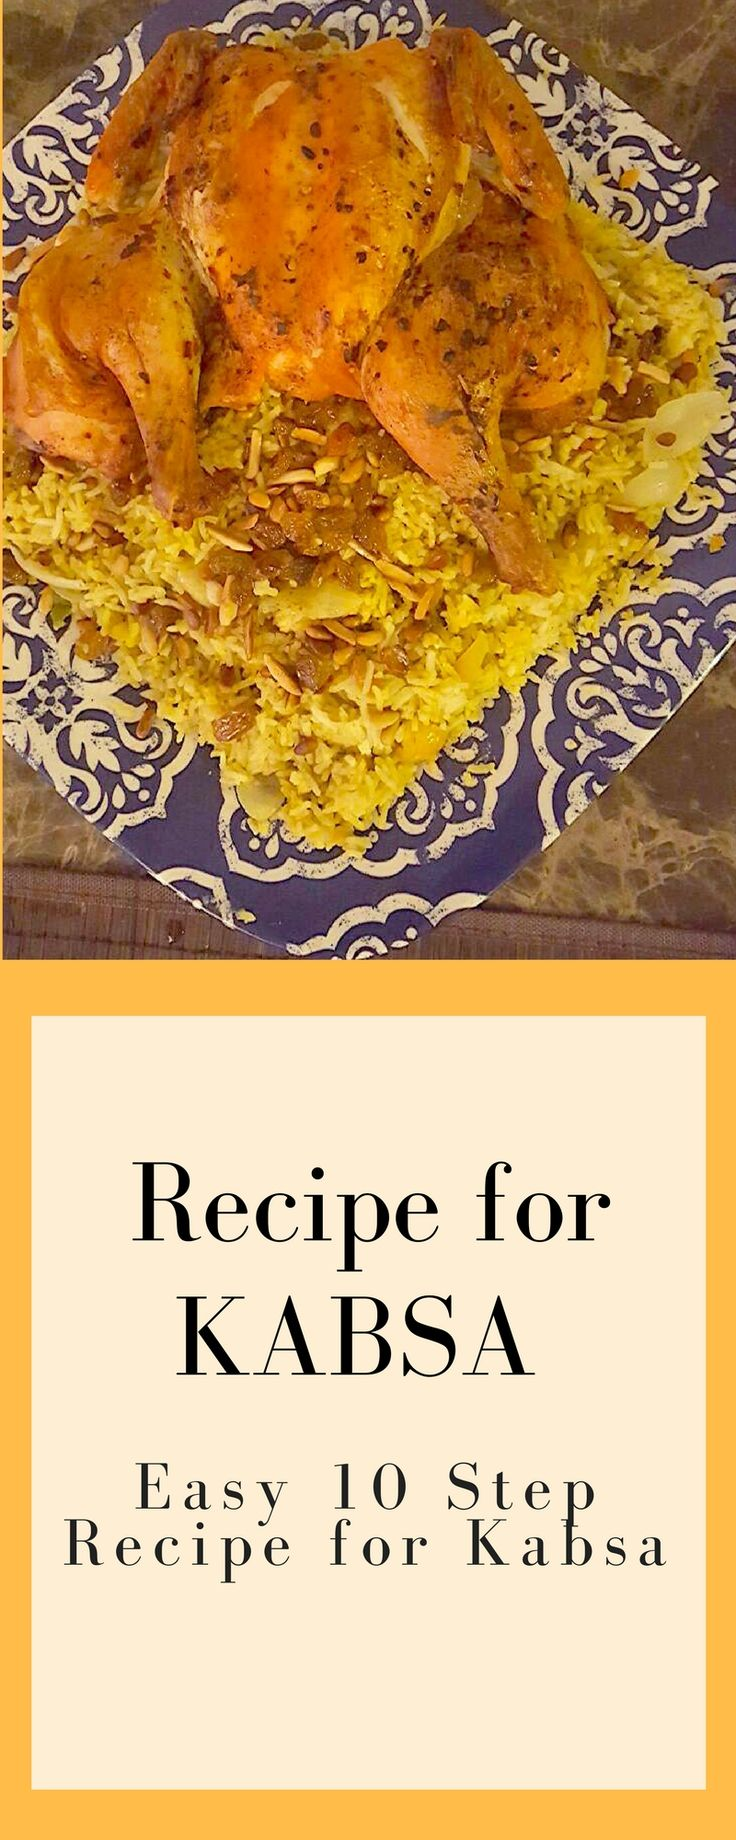 Arabic Food Recipe, Wow your family and your guests with this easy 10 step Arab Food Recipe for Kabsa - Chicken and Rice Dish (scheduled via http://www.tailwindapp.com?utm_source=pinterest&utm_medium=twpin&utm_content=post183238175&utm_campaign=scheduler_attribution)